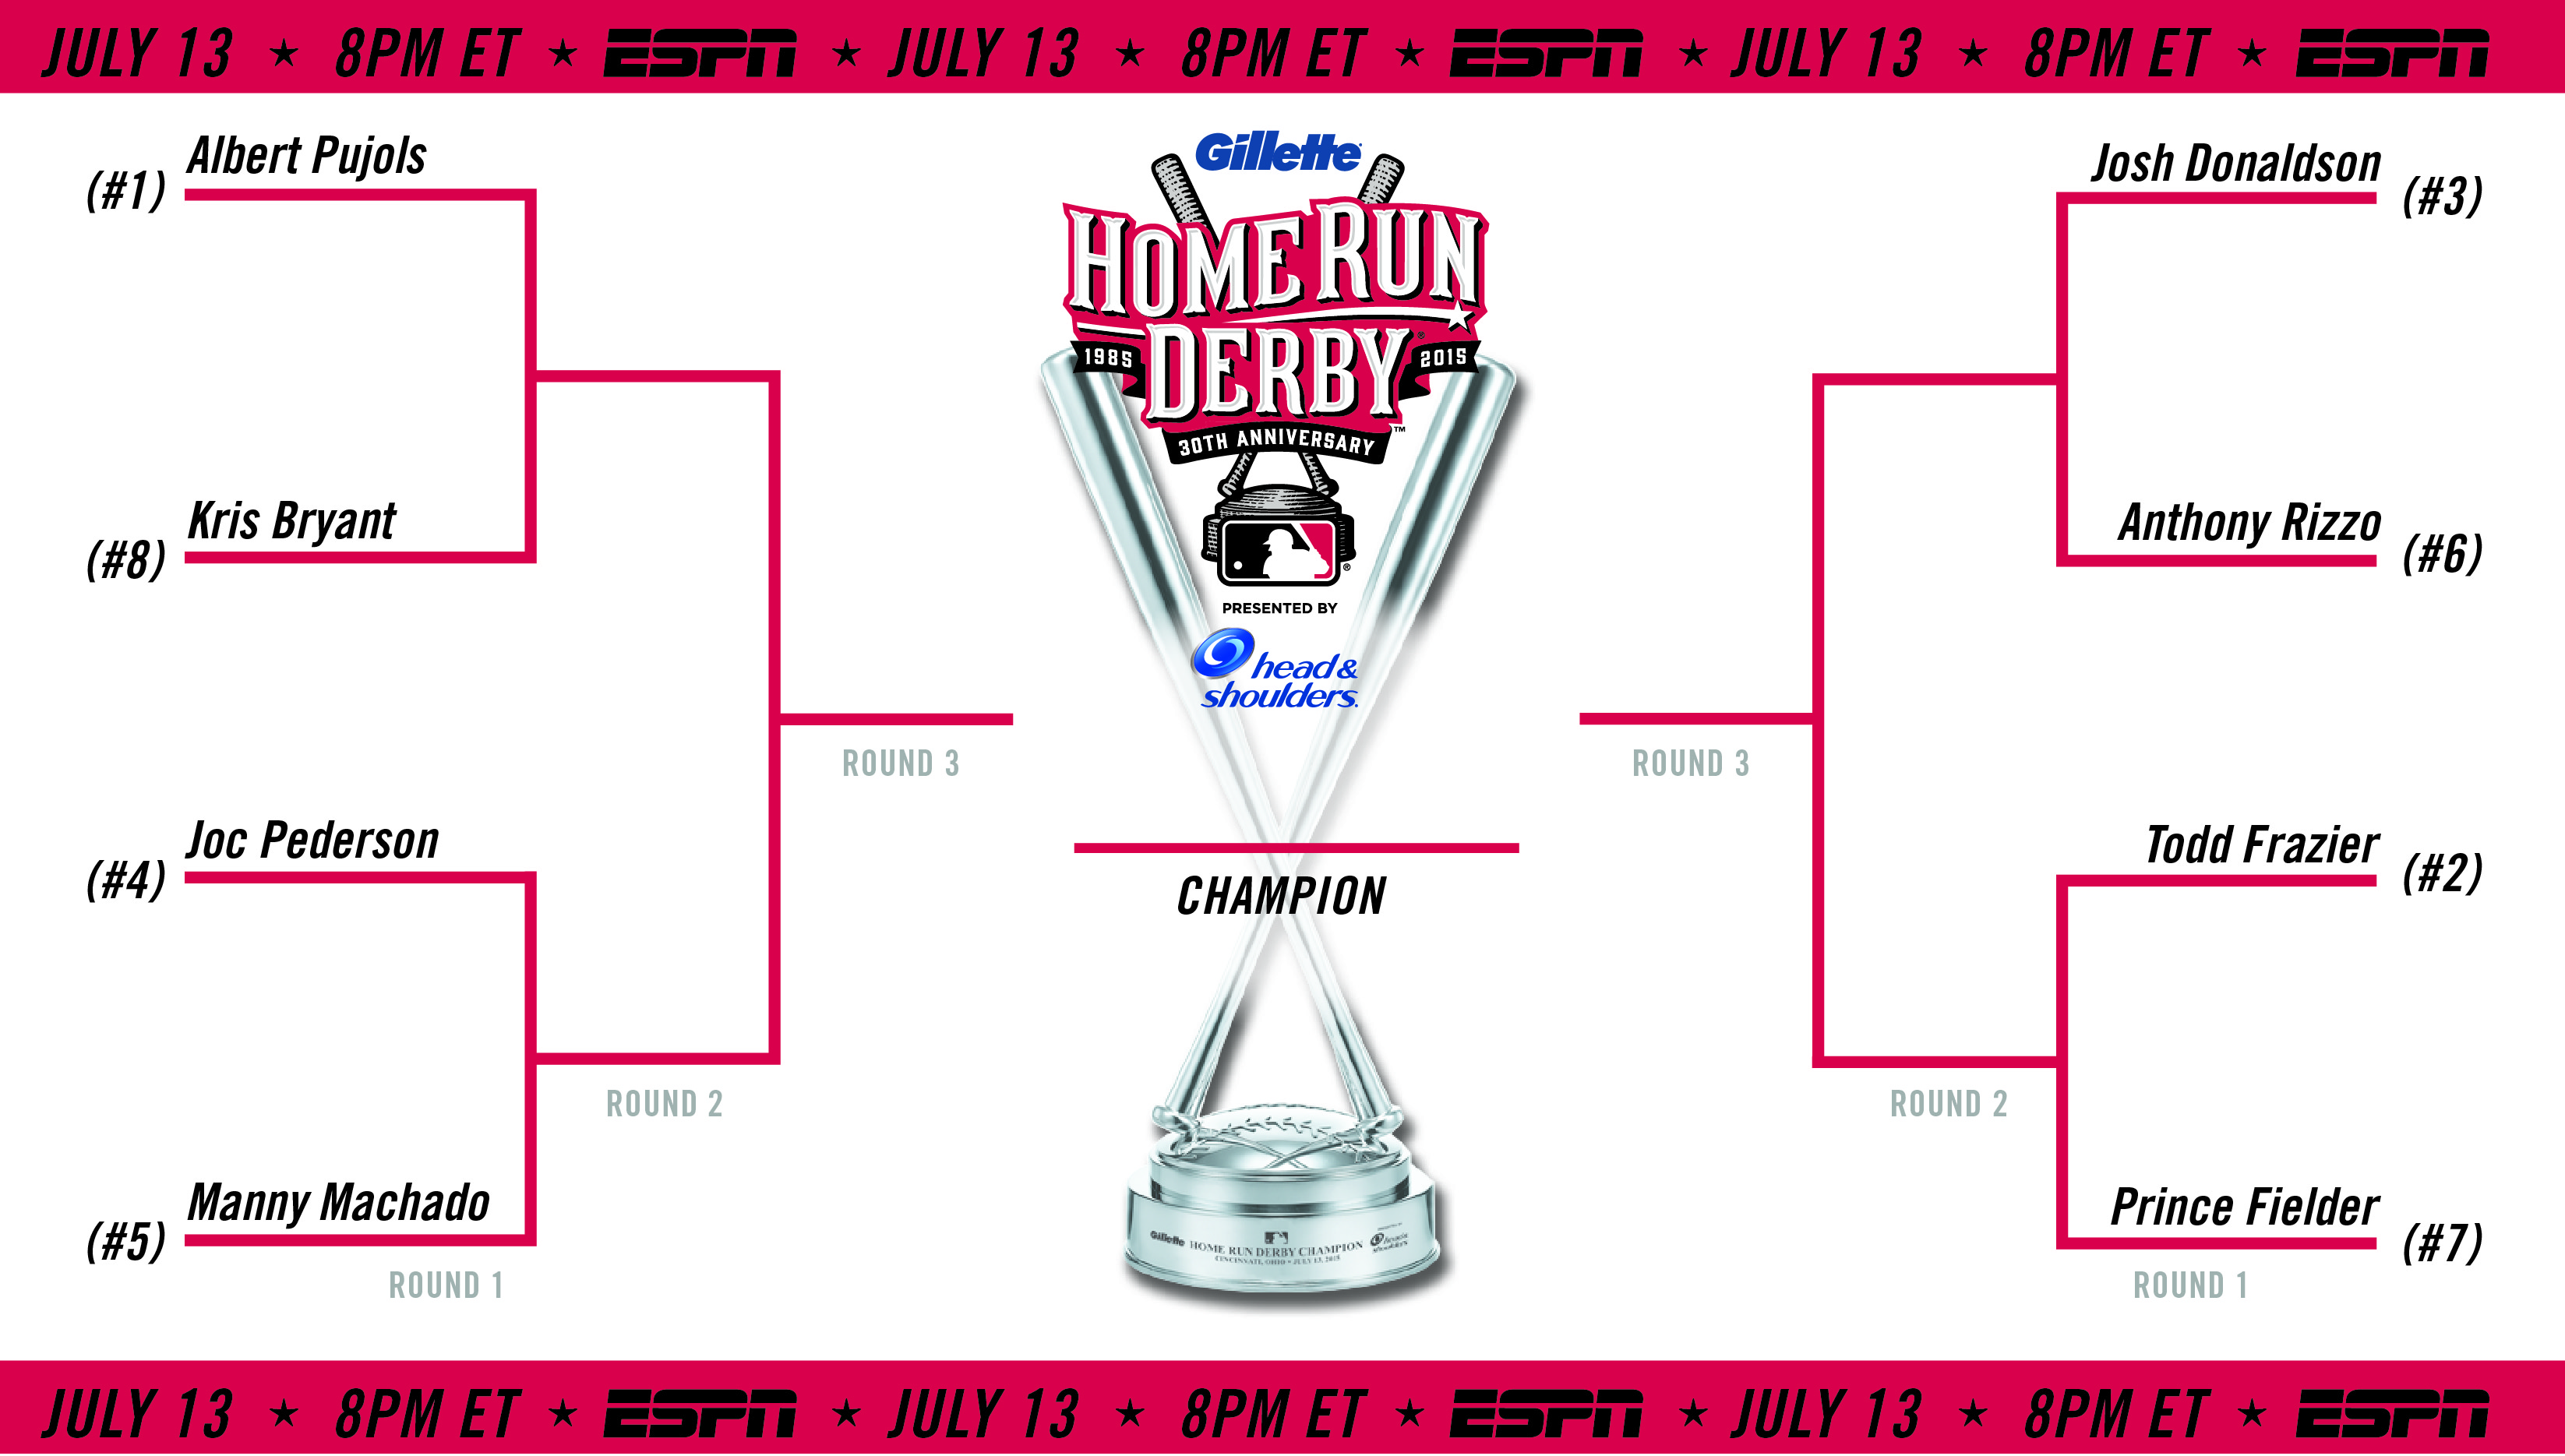 Home Run Derby Time TV schedule participants and more